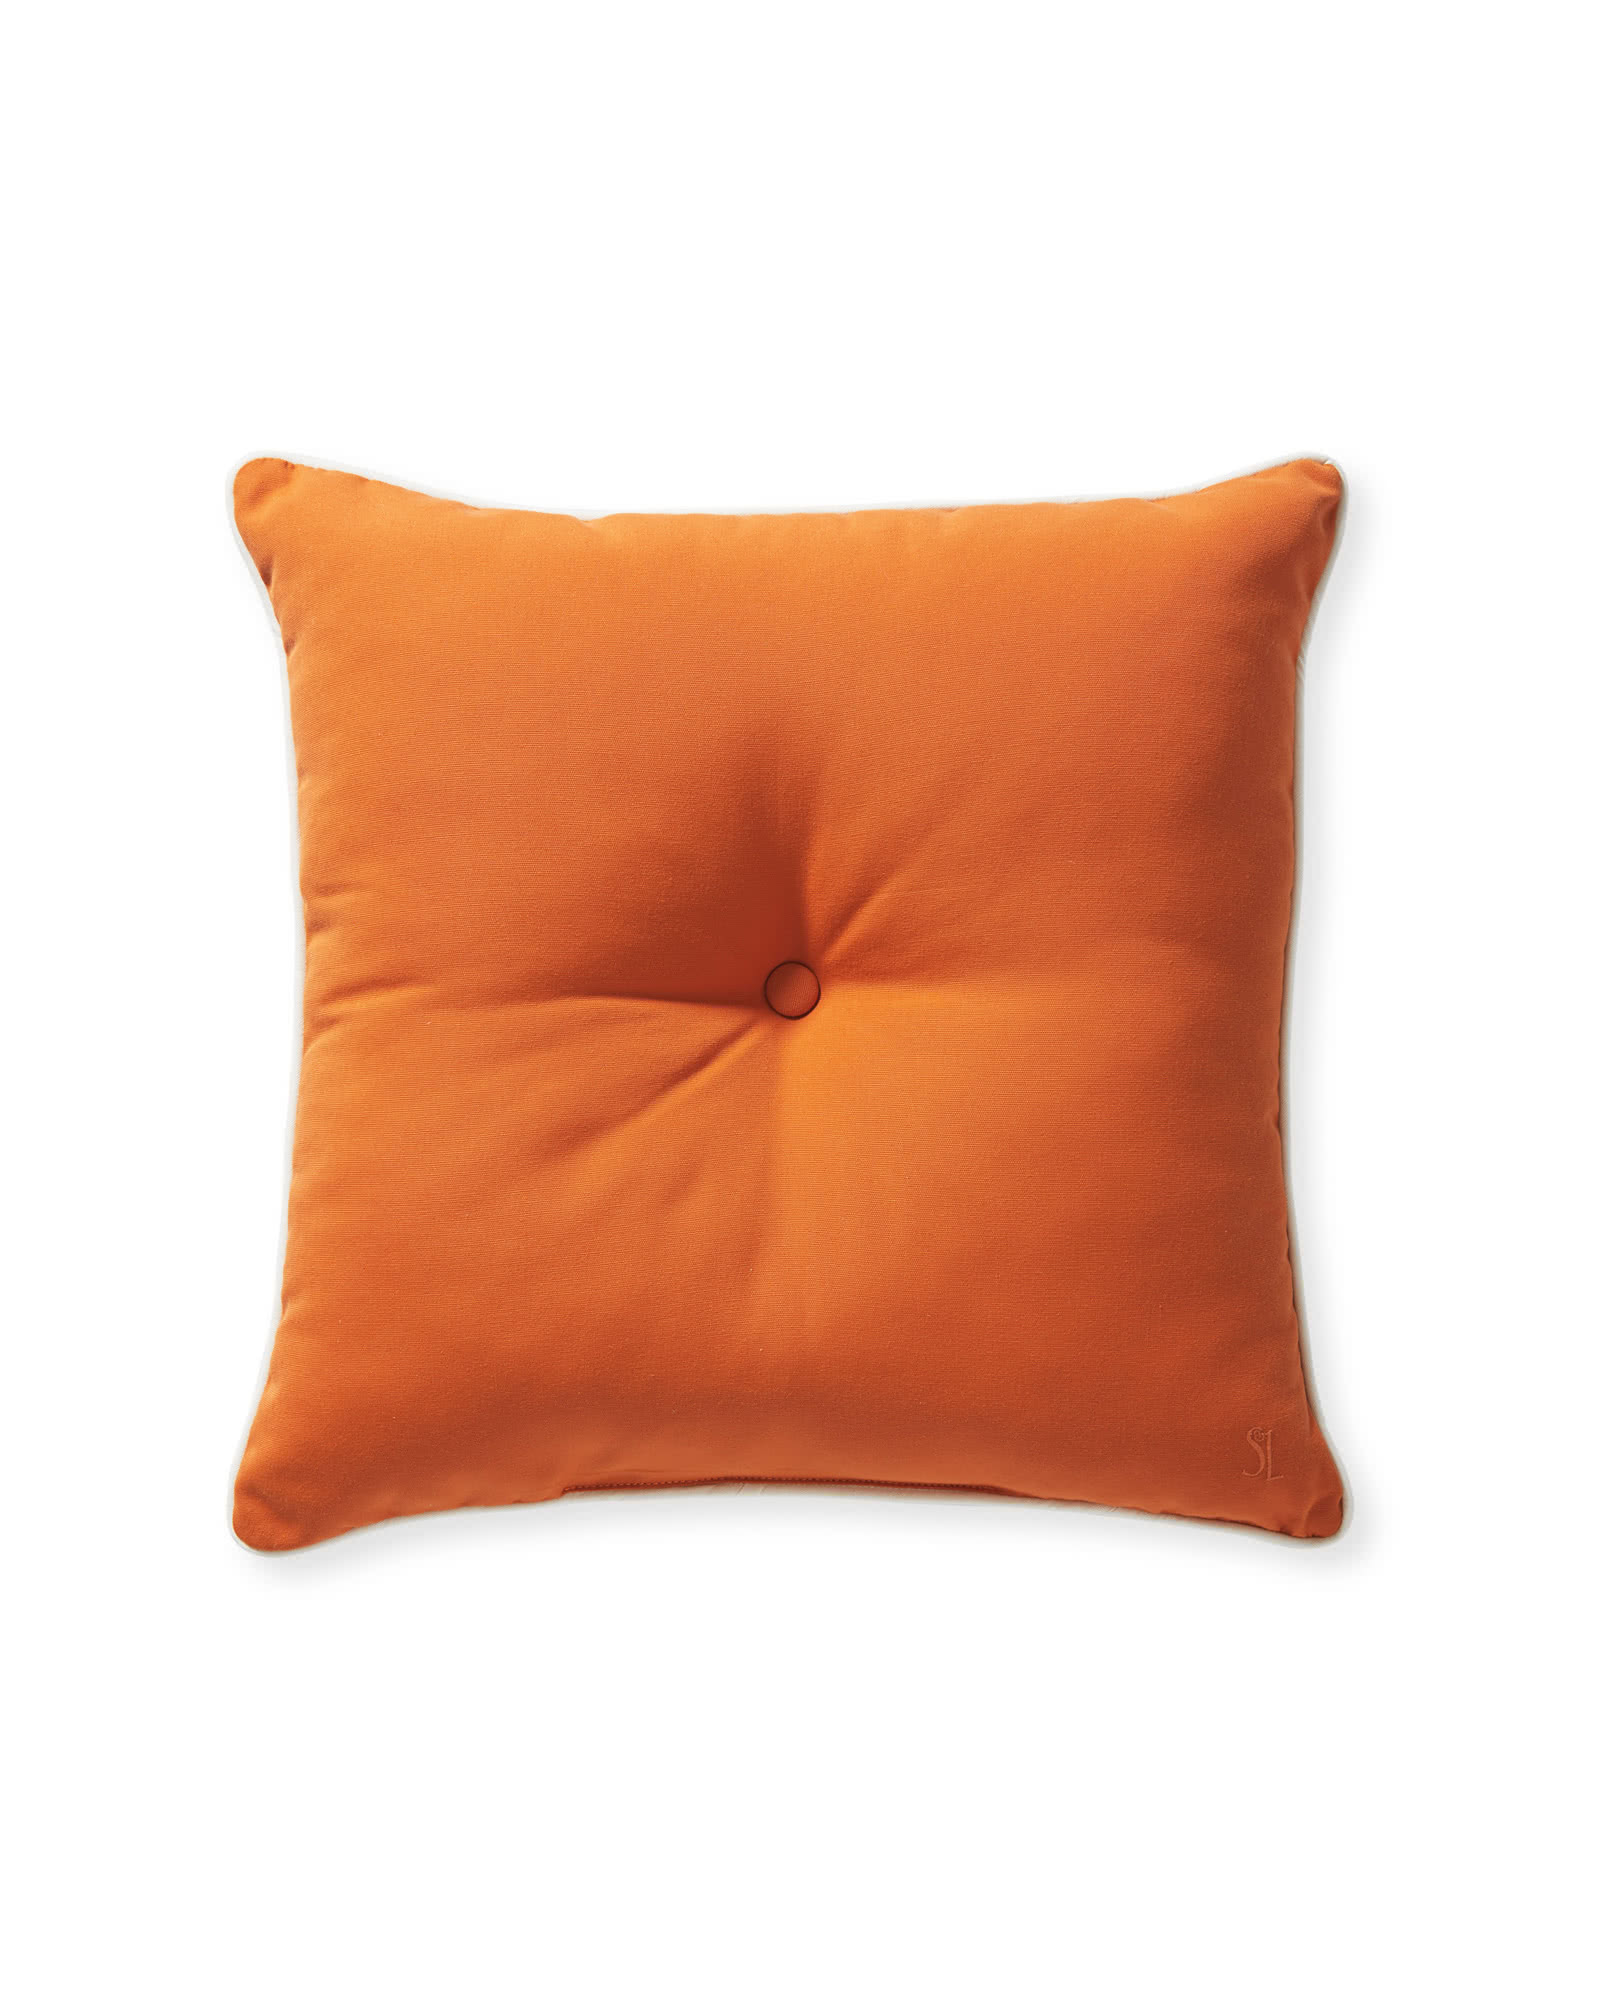 Lido Pillow, Orange